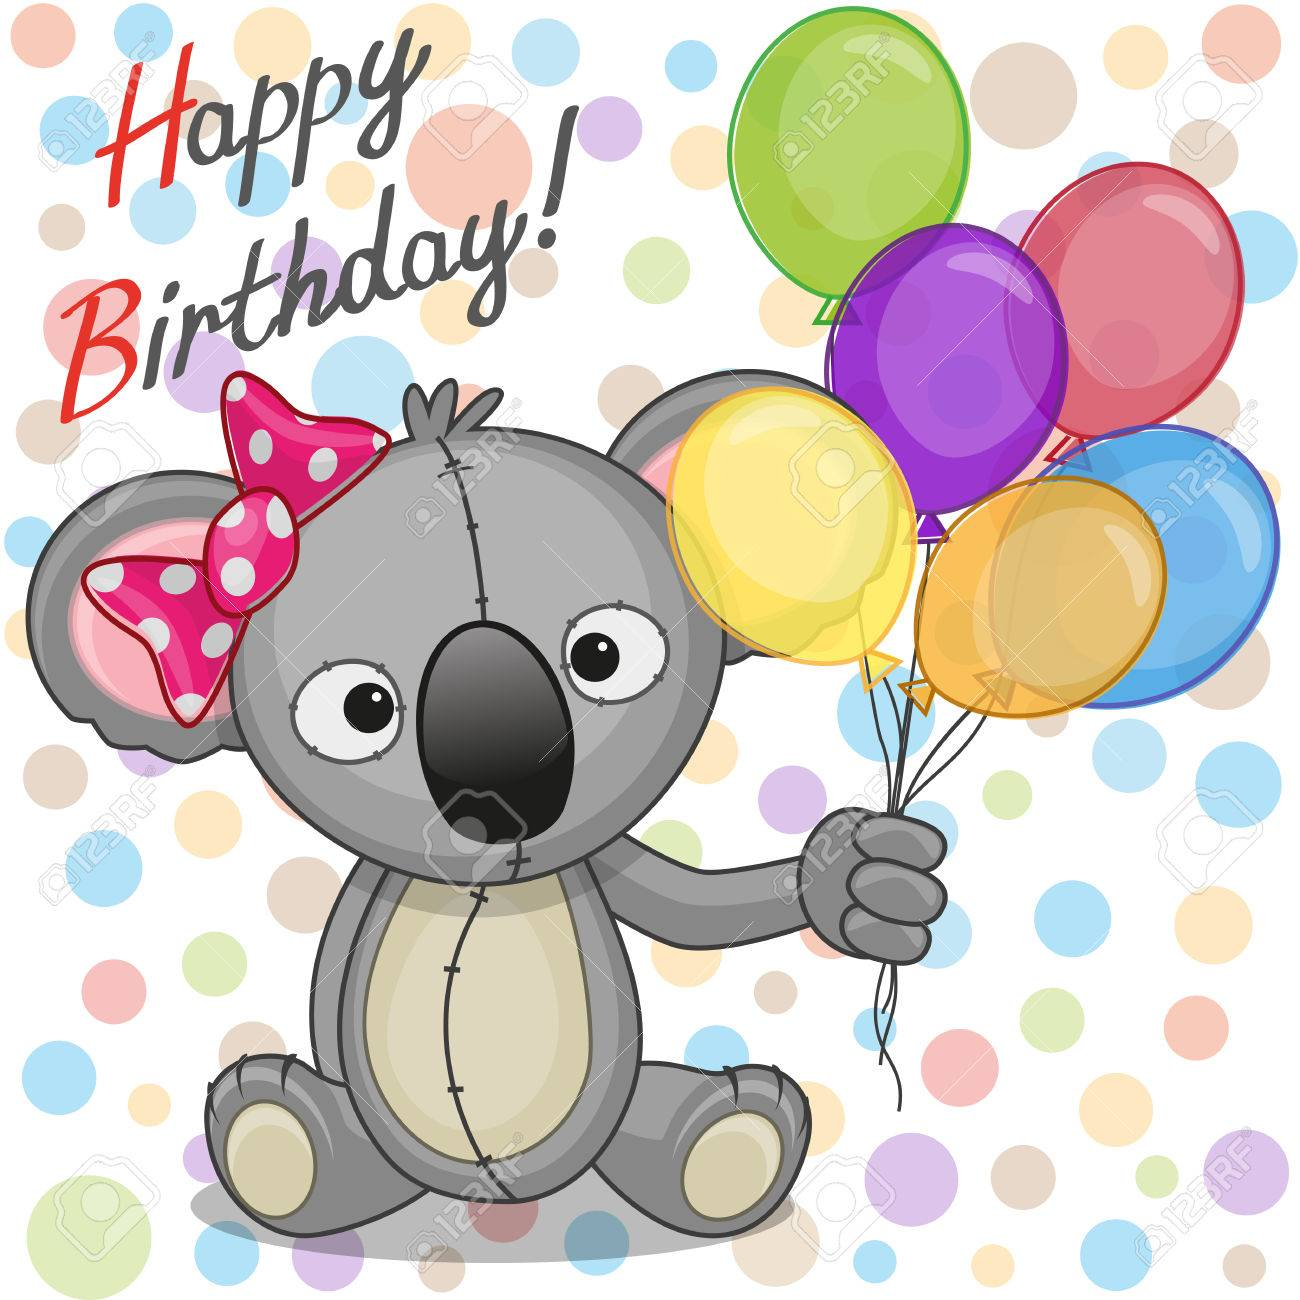 Greeting card koala with balloons royalty free cliparts vectors greeting card koala with balloons stock vector 30259300 m4hsunfo